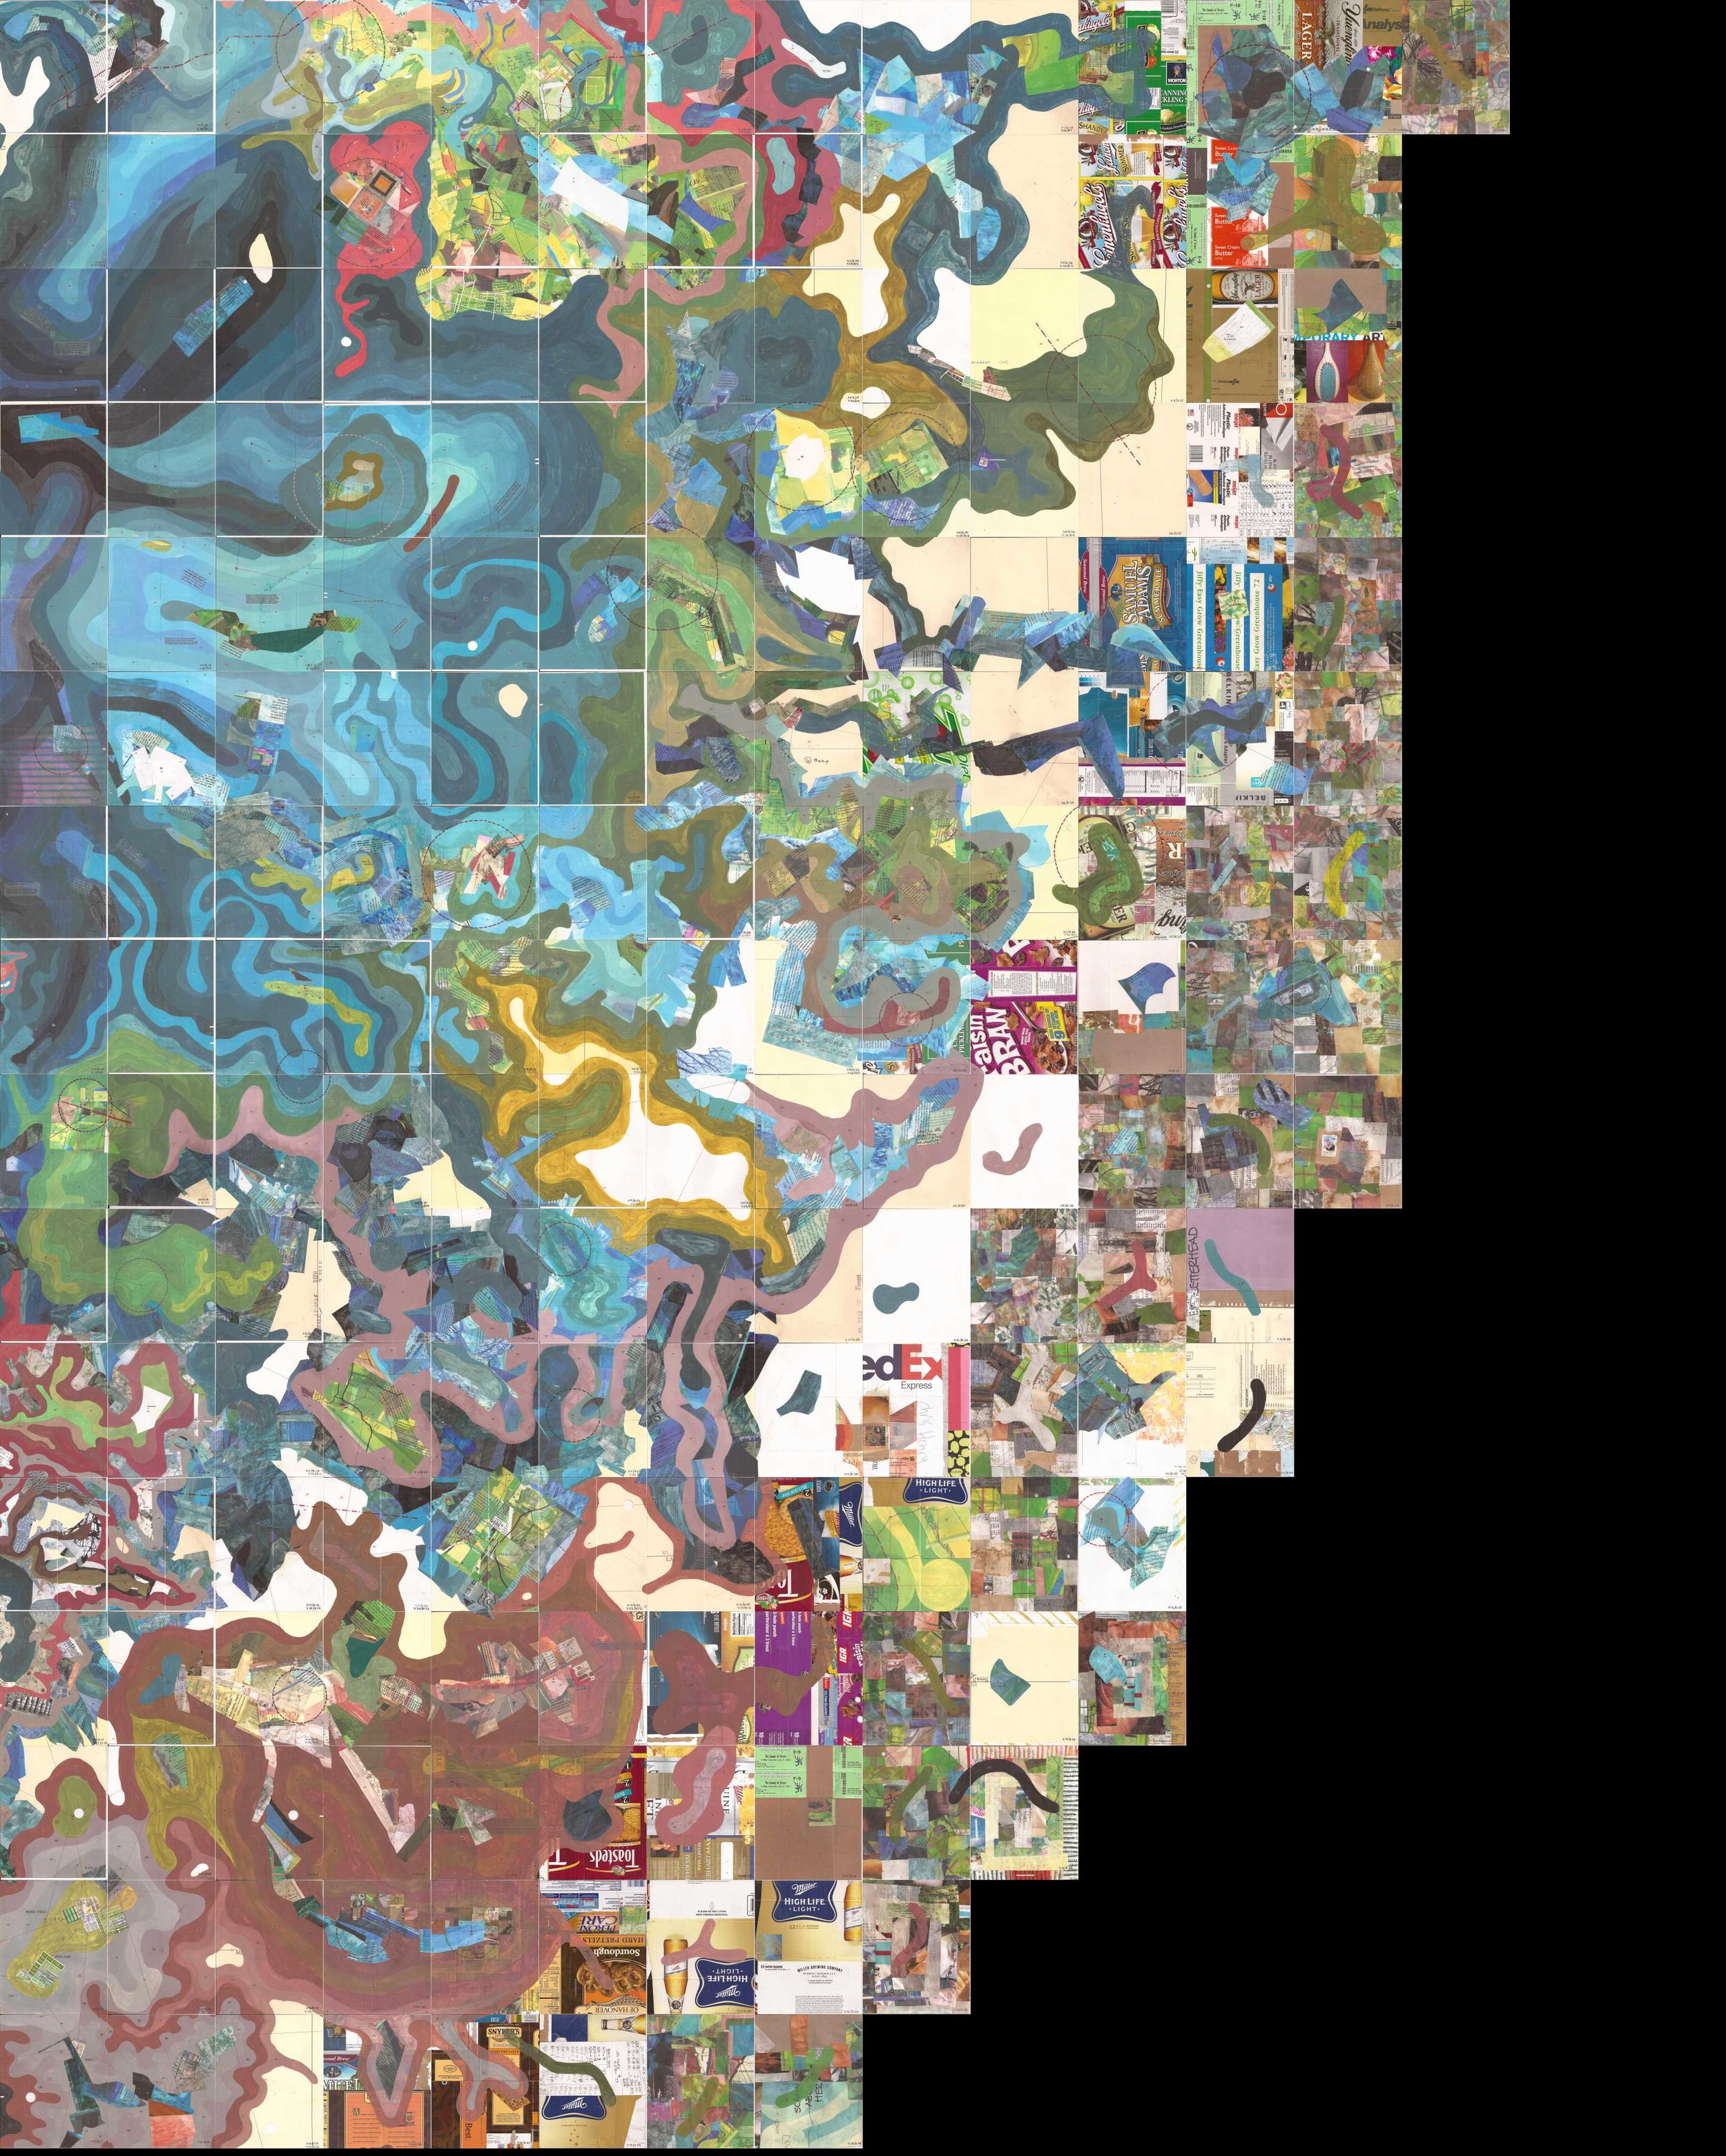 Otherworldly, monumental map takes over Intuit's museum walls--7/22/19